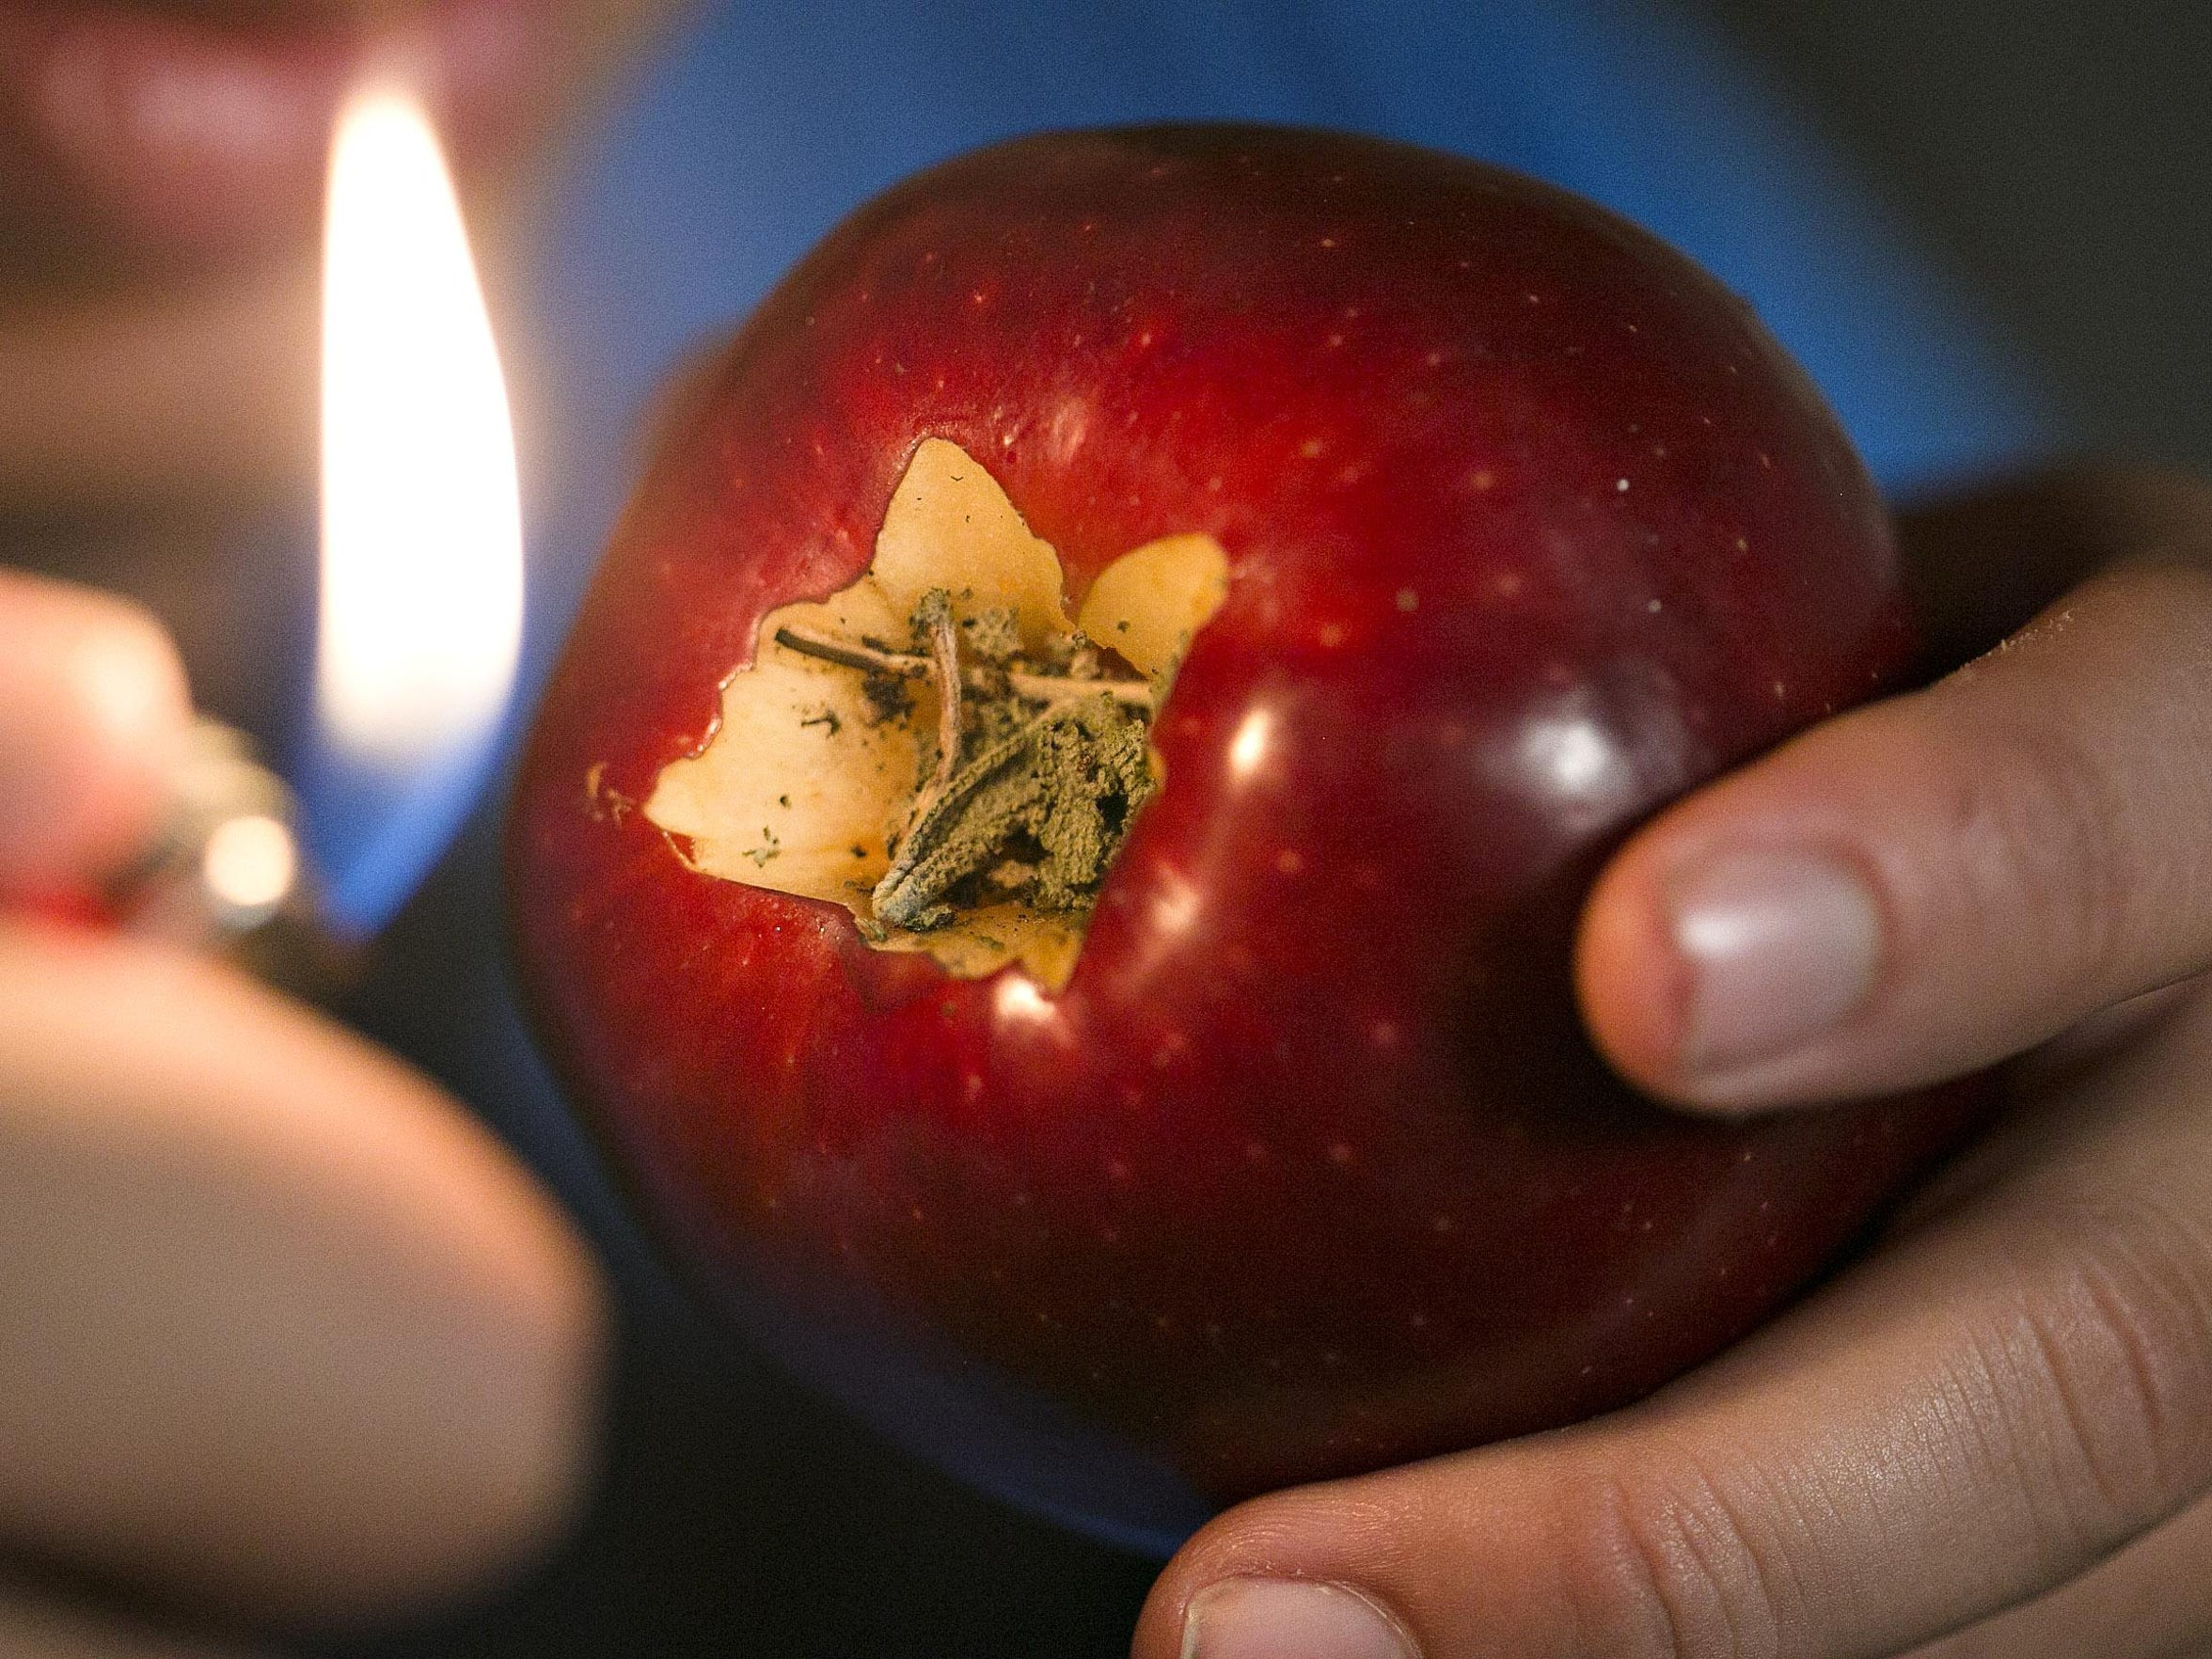 A photo illustration by the News-Leader shows an apple